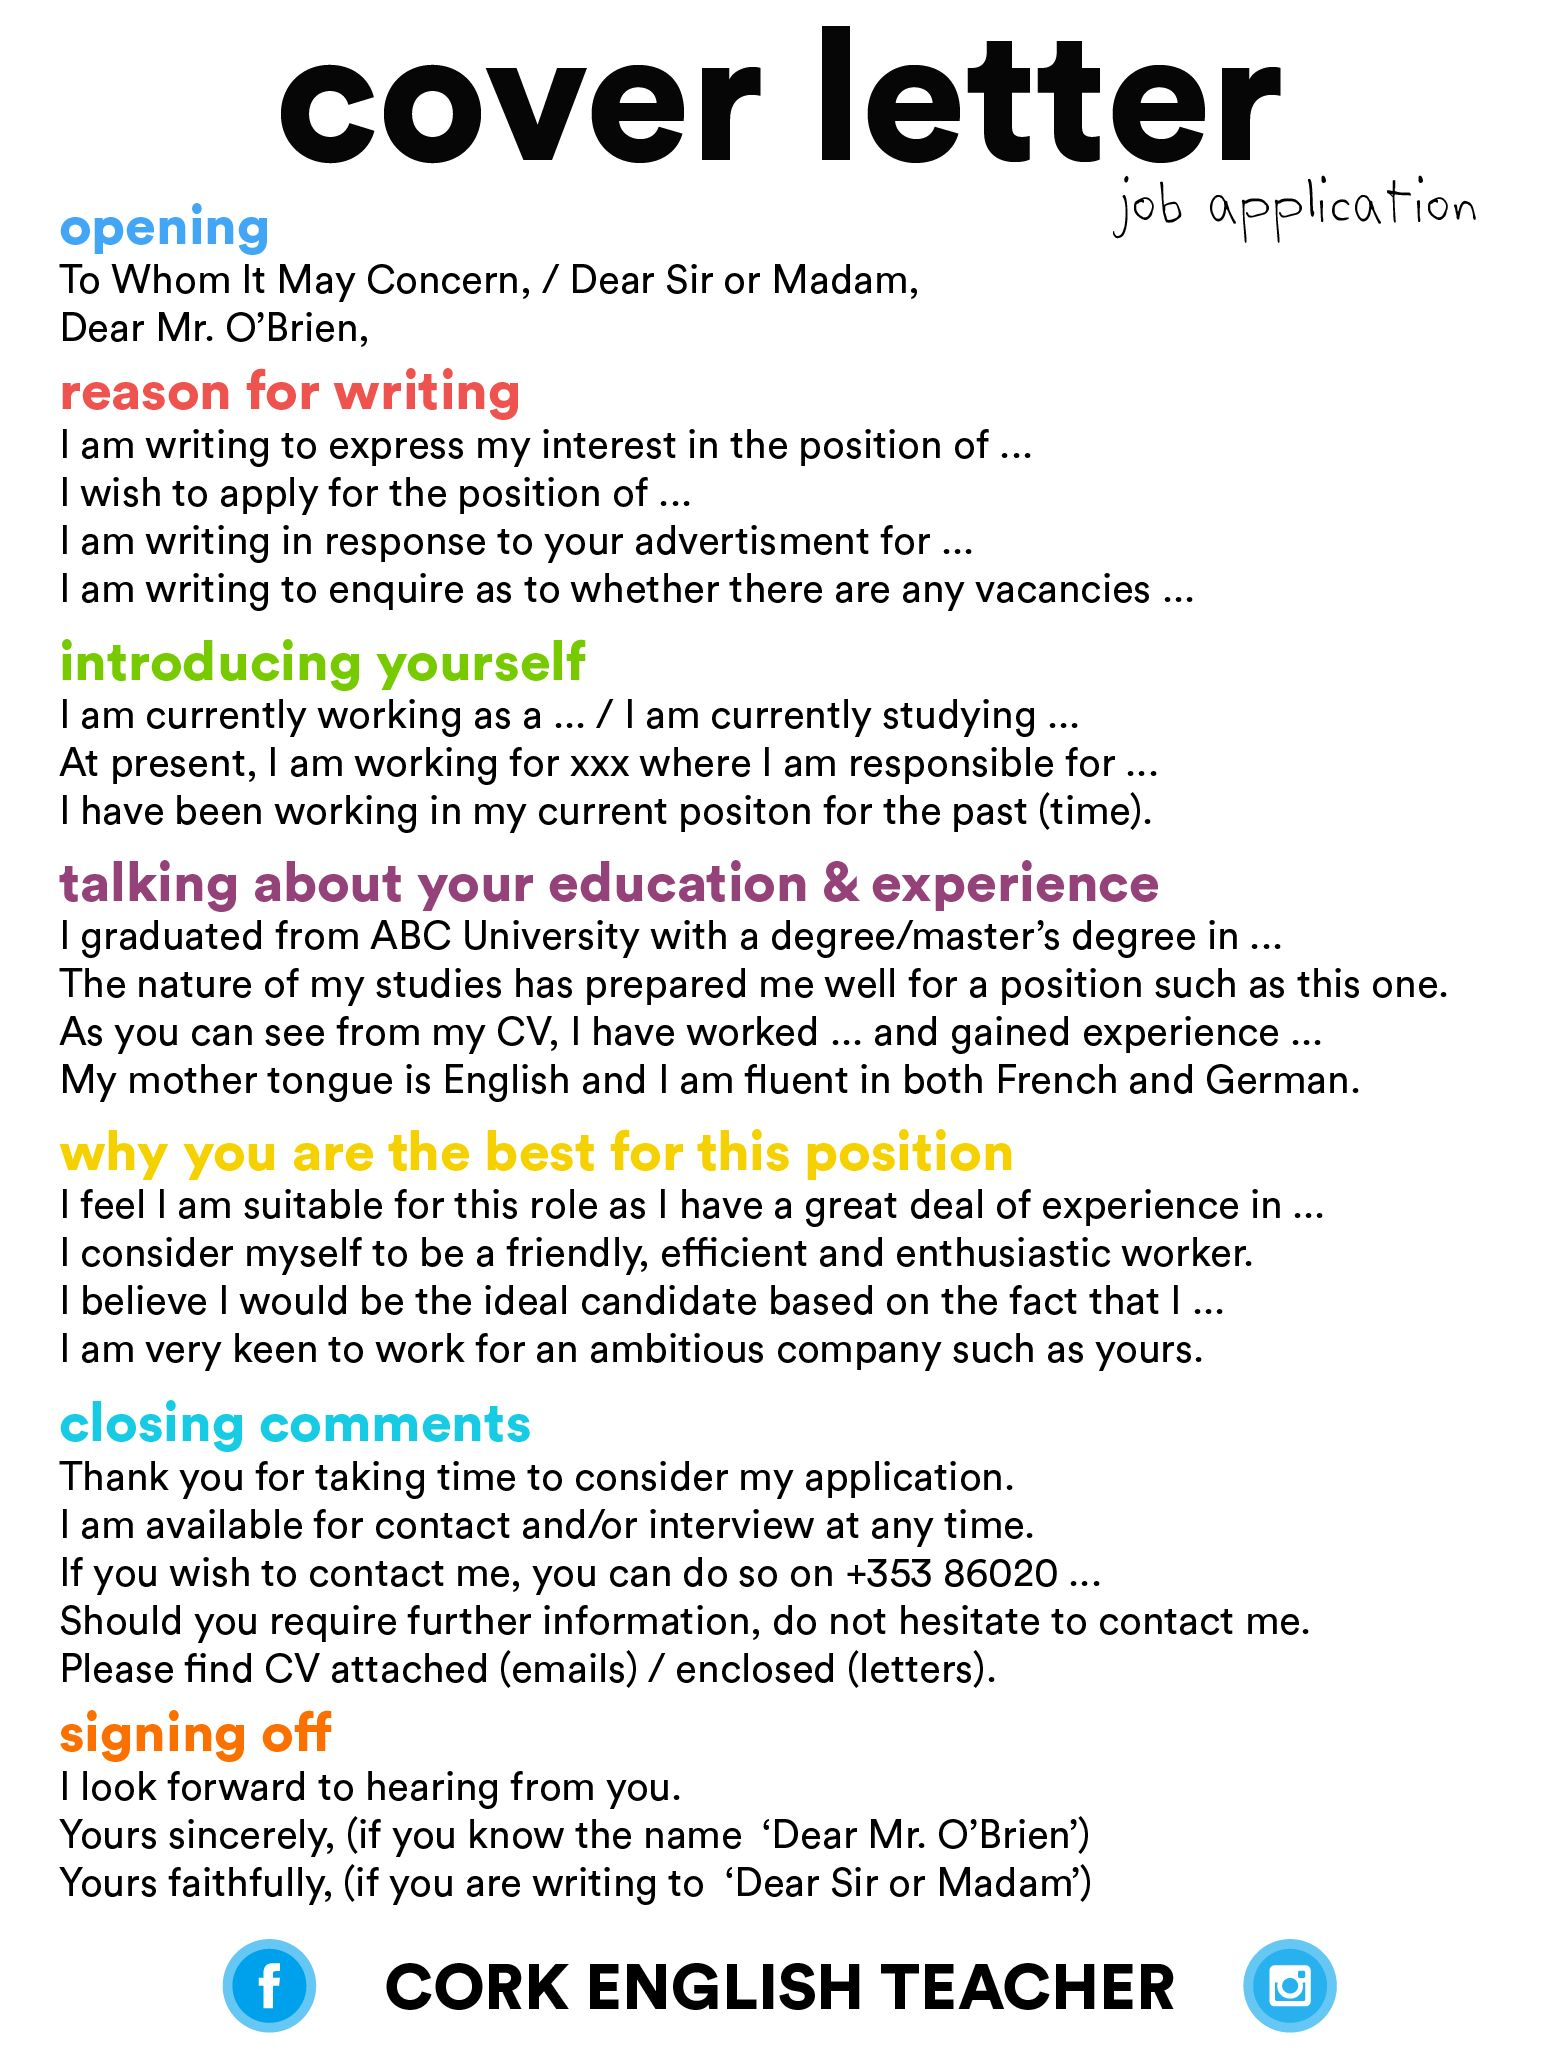 27 Difference Between Cover Letter And Resume